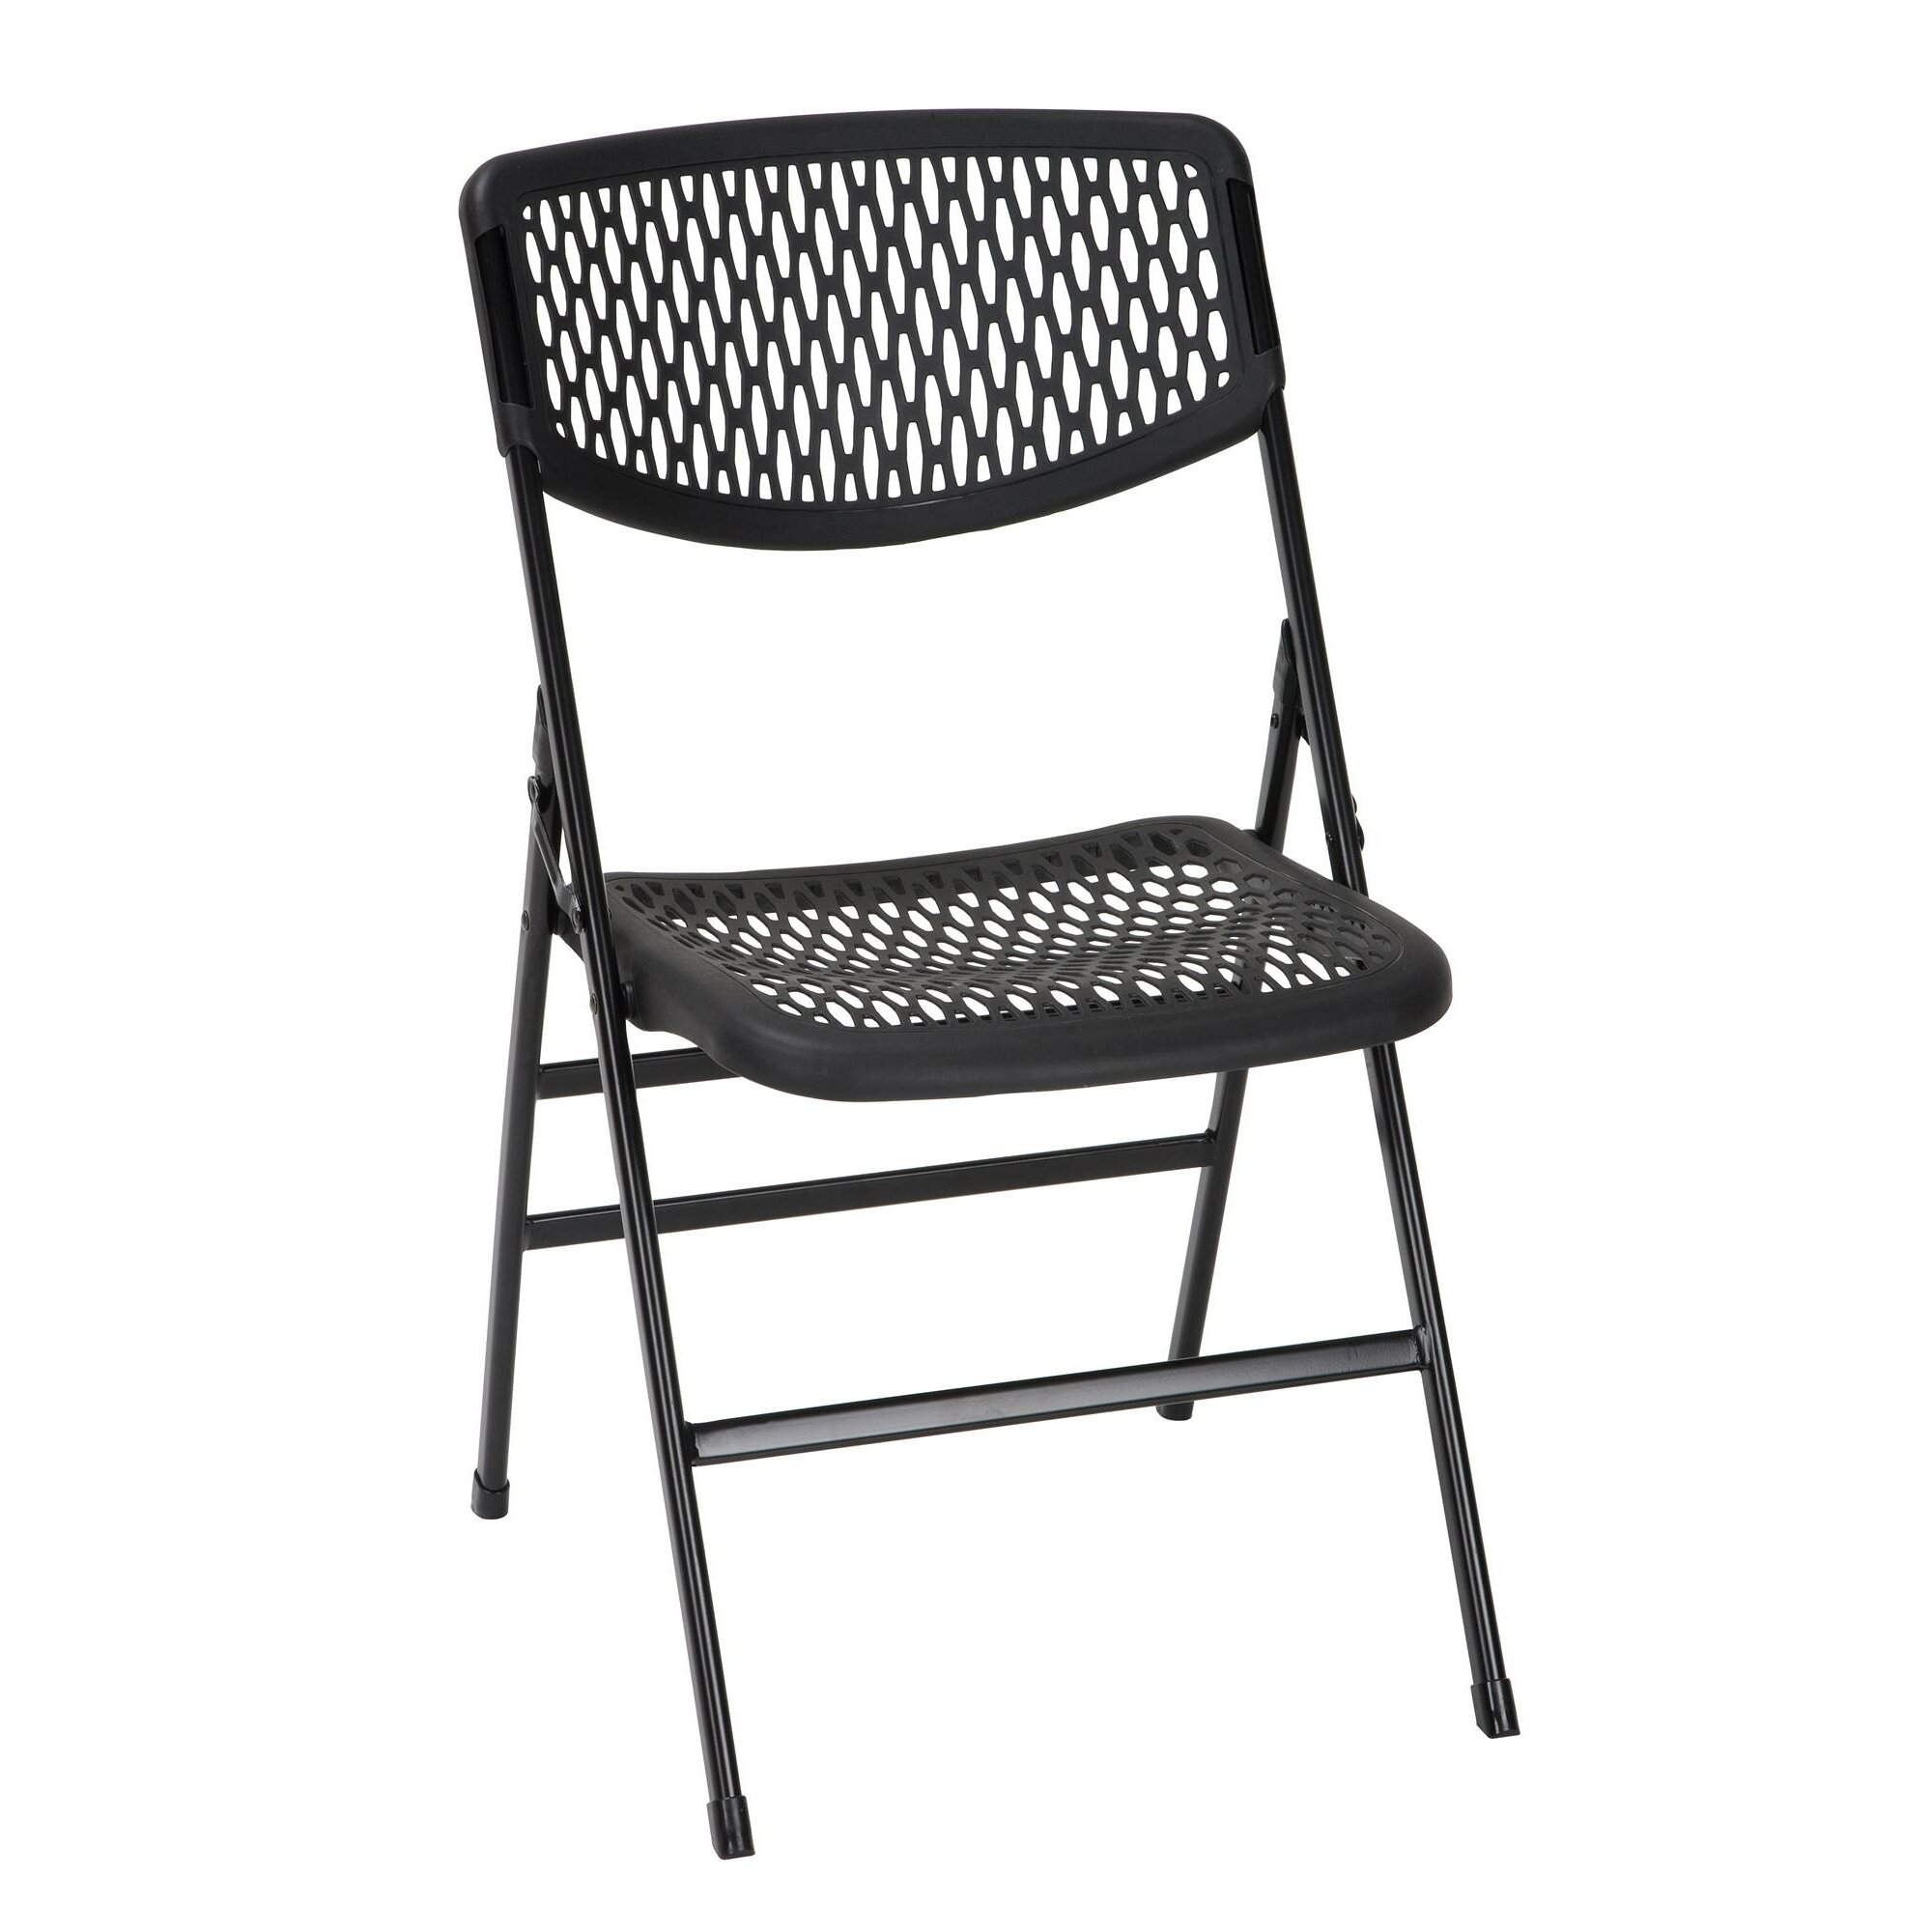 Cosco Home and fice mercial Resin Mesh Folding Chair & Reviews